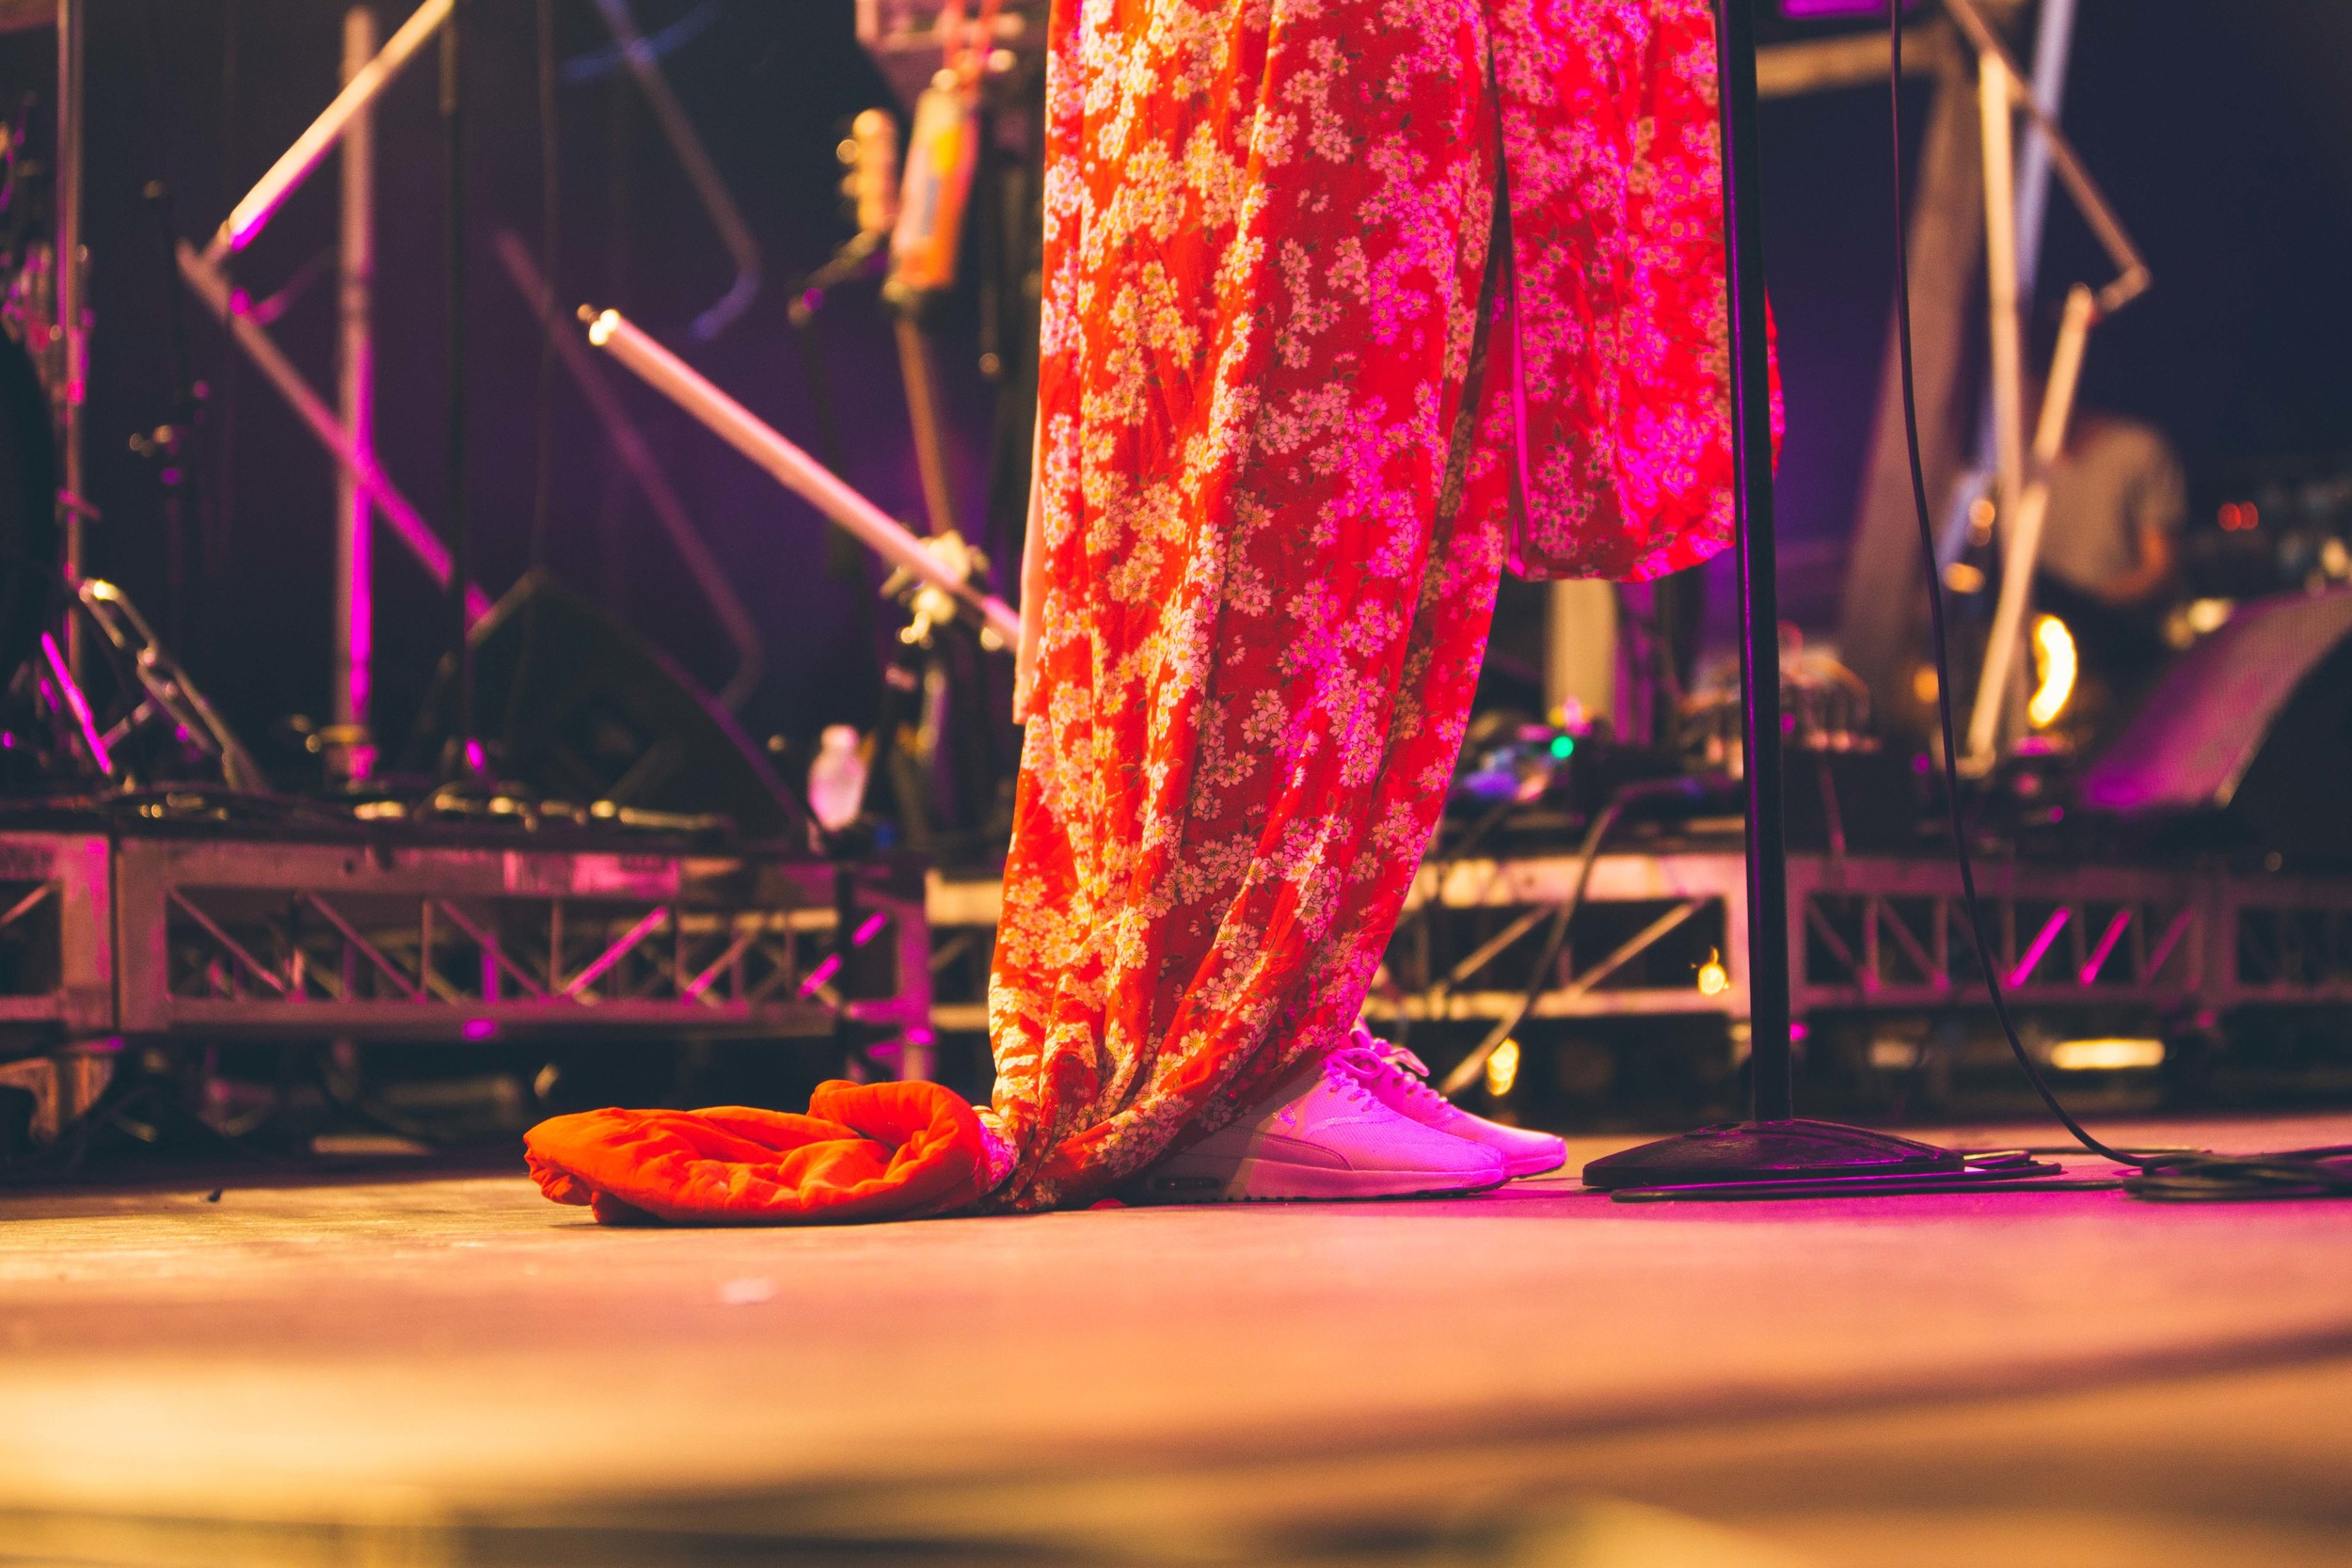 LittleDragon_LanewayBrisbane_31January2015_MiaForrest_LittleDragon_LanewayBrisbane_31January2015_MiaForrest_104A4434.jpg